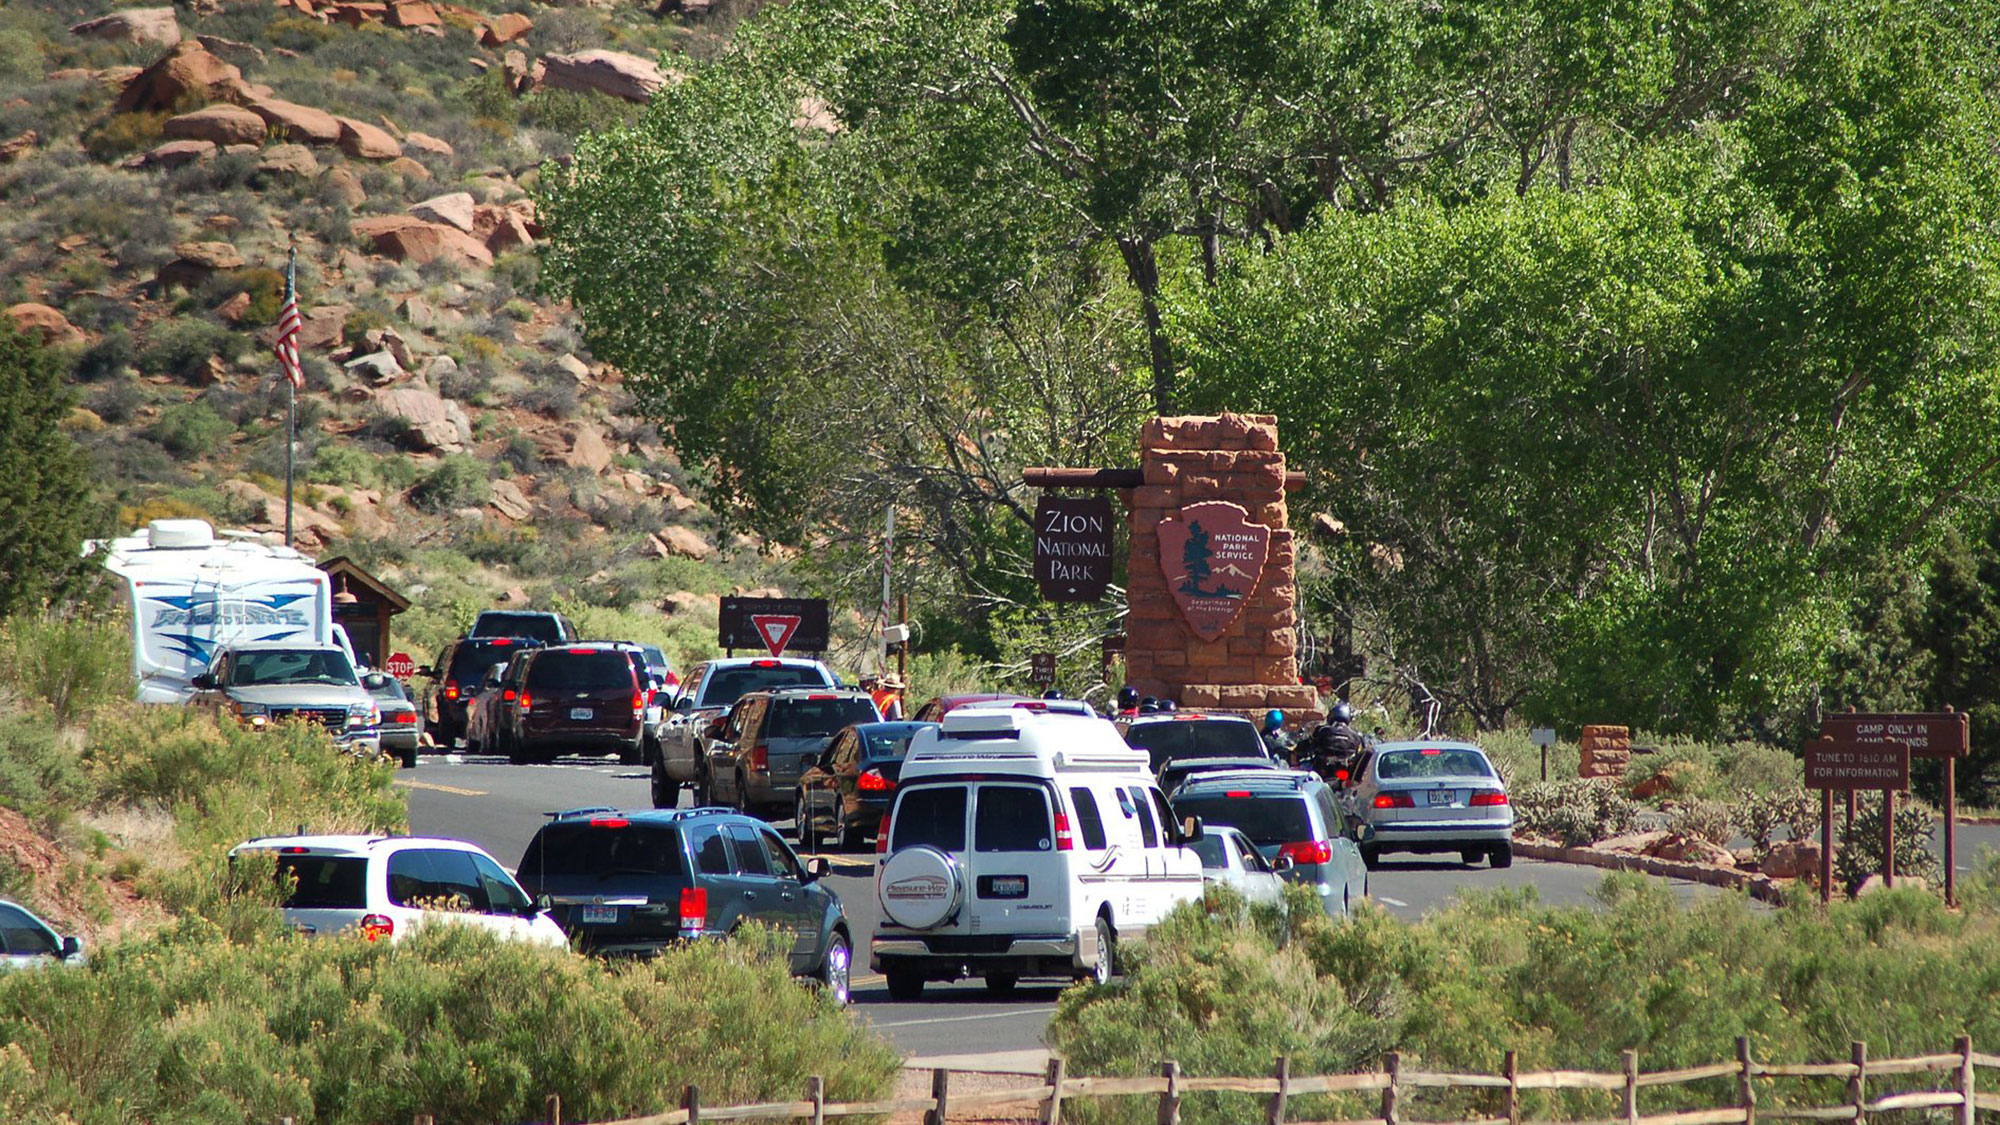 A massive line of cars wait in traffic to enter Zion National Park in the southern part of Utah in the United States. Midway in the line of traffic is a sign with the park's name on it. In the background is a cliff of red rocks that the region is known for. Green trees tower over the cars.